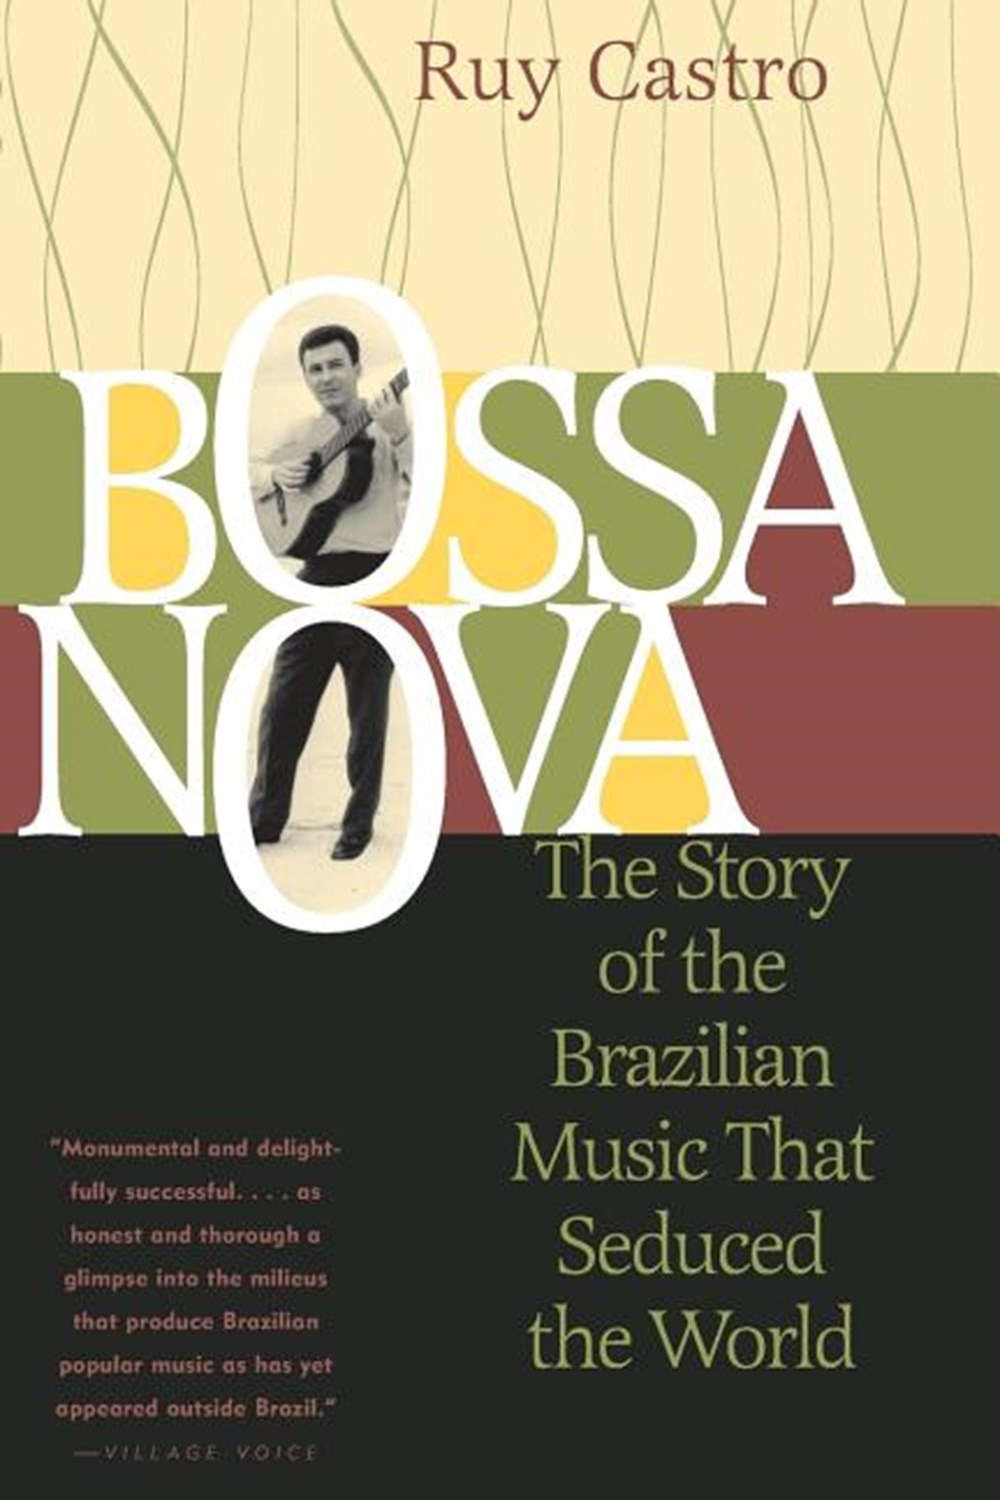 Bossa Nova The Story of the Brazilian Music That Seduced the World (Revised)